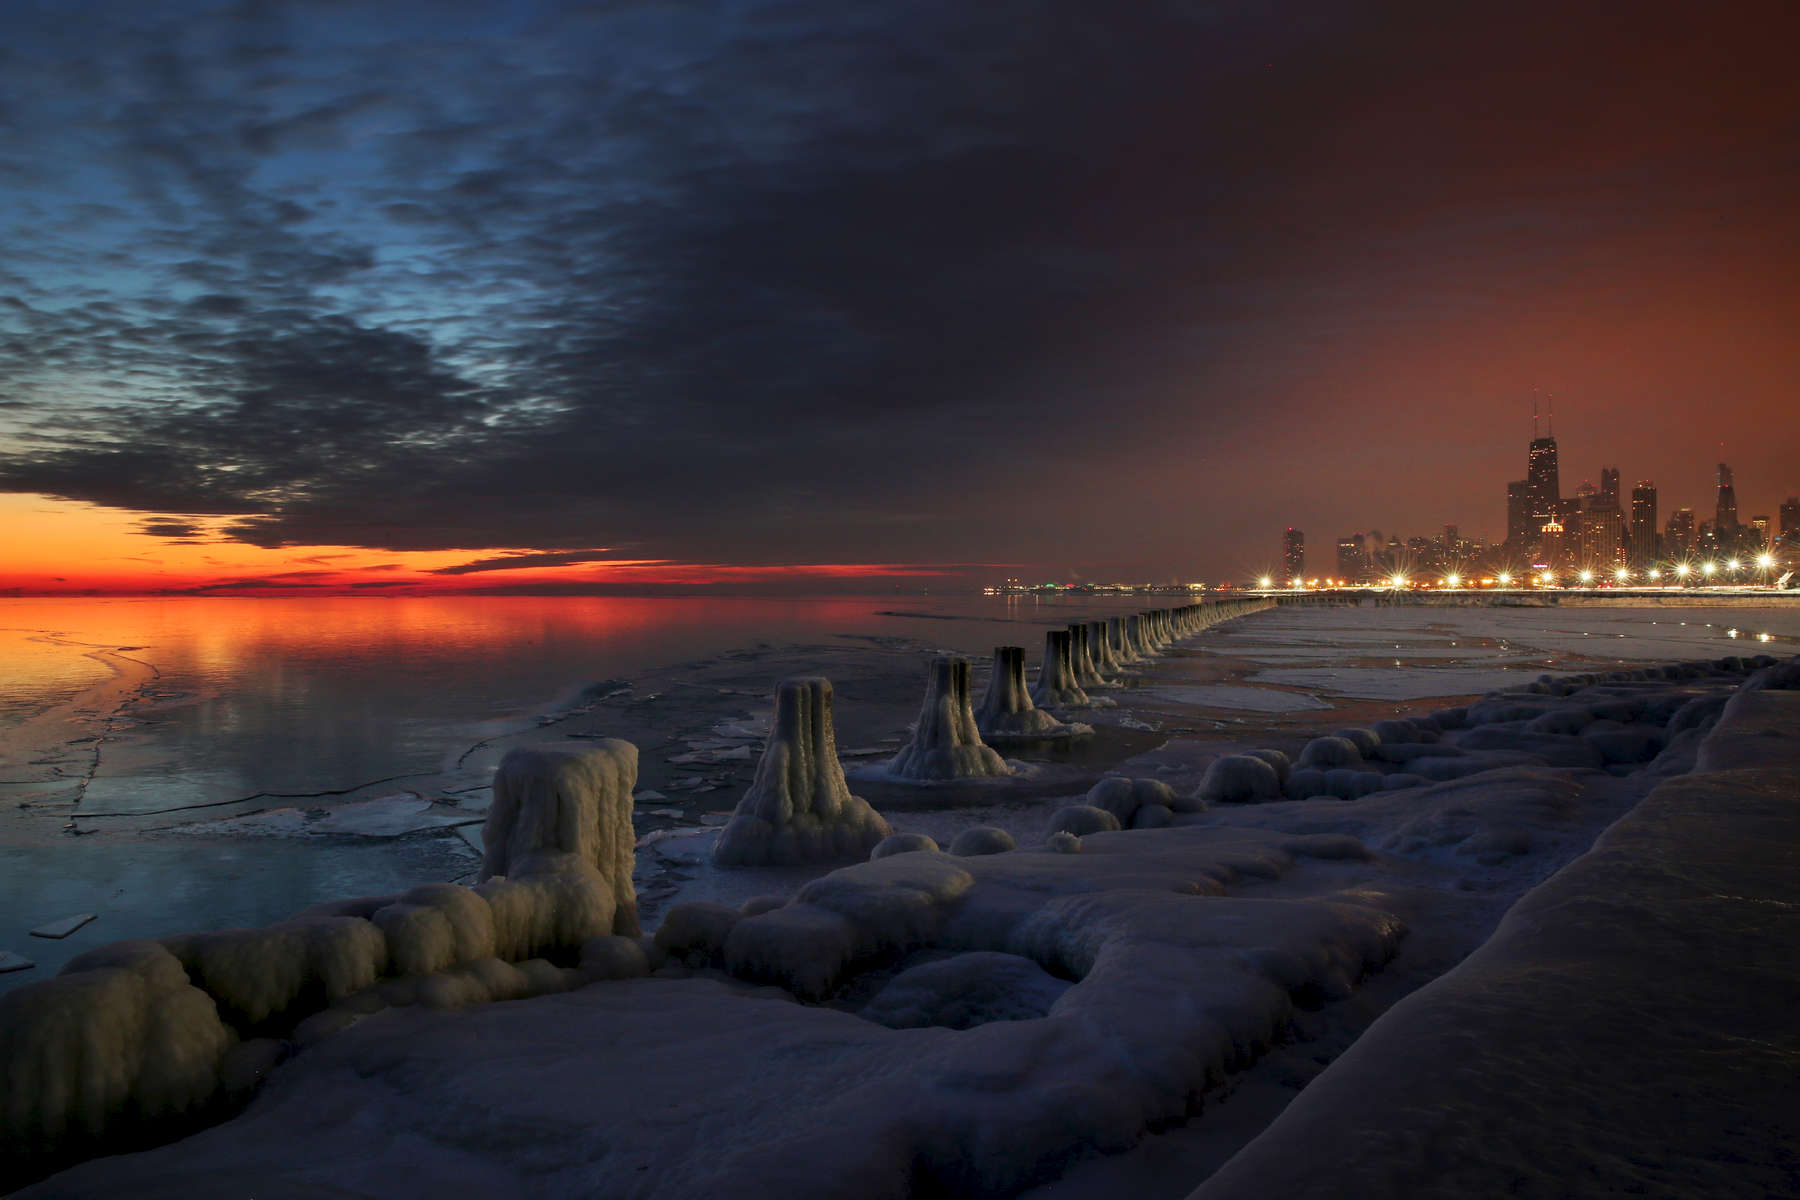 The sun started to break over the horizon as the city skyline glowed with artifical light in the early morning hours of the Polar Vortex at the Fullerton Street Beach along the frozen shore of Lake Michigan in Chicago.